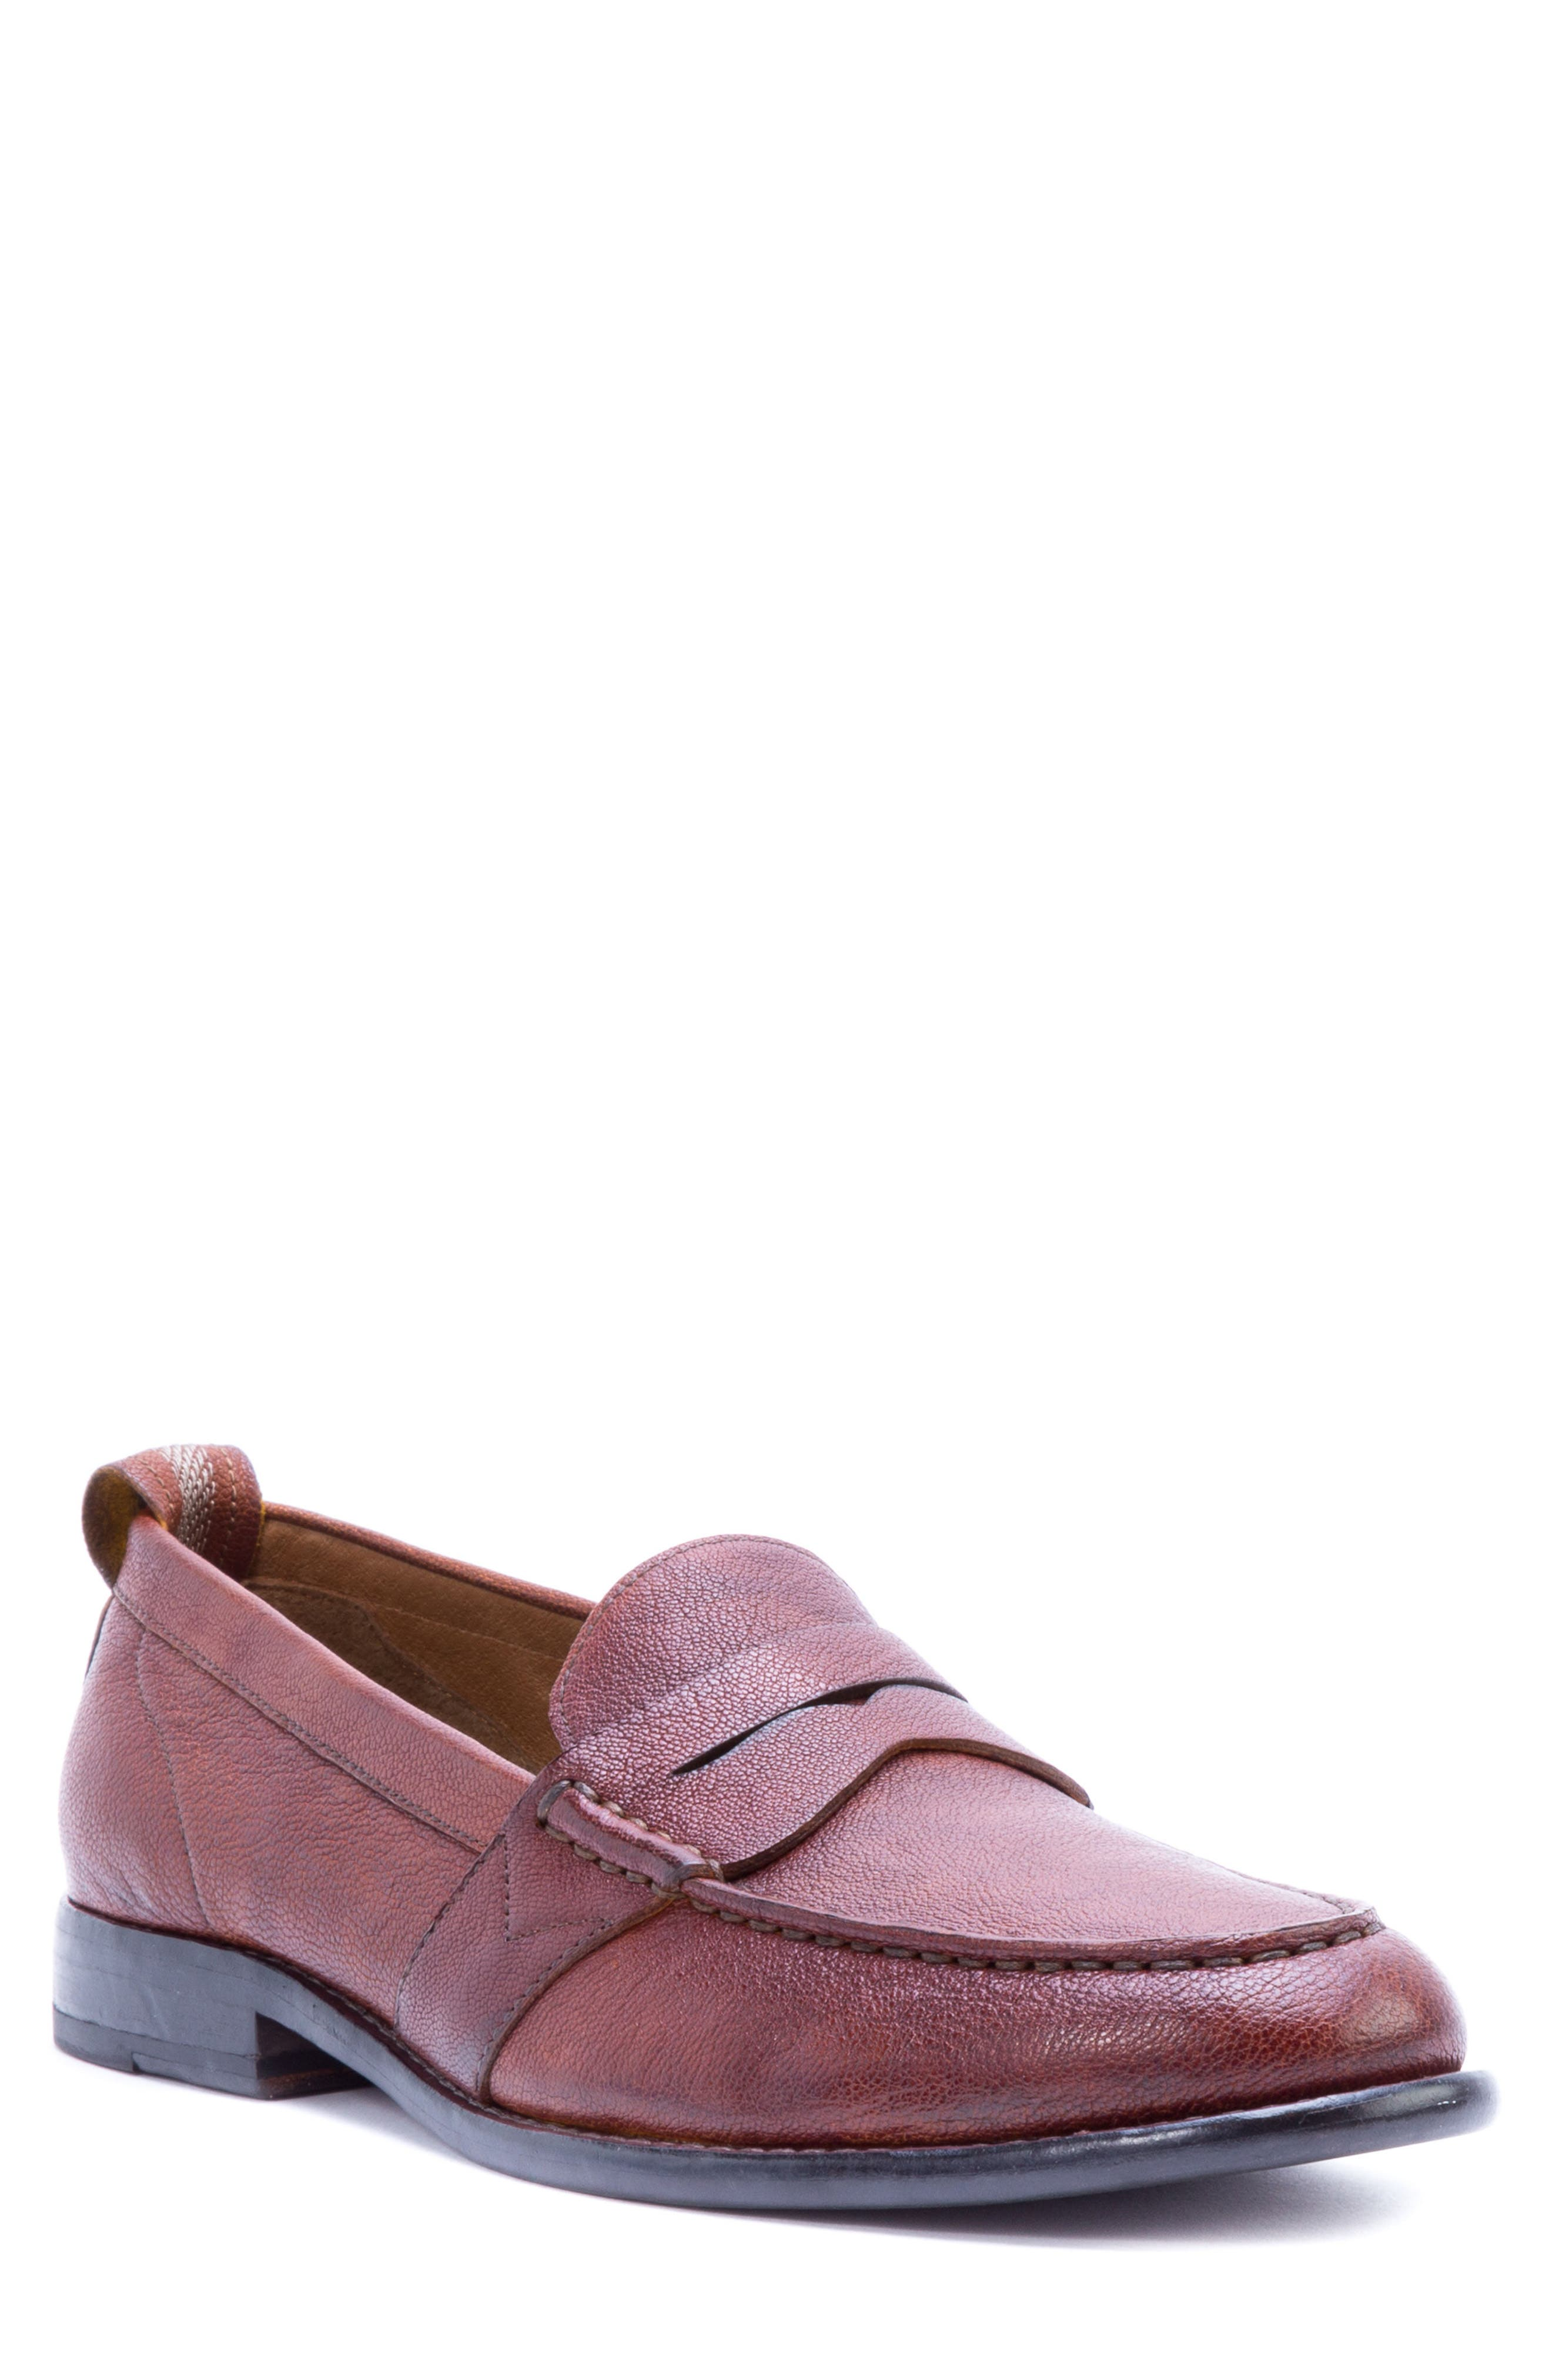 Torres Penny Loafer,                             Main thumbnail 1, color,                             Cognac Leather